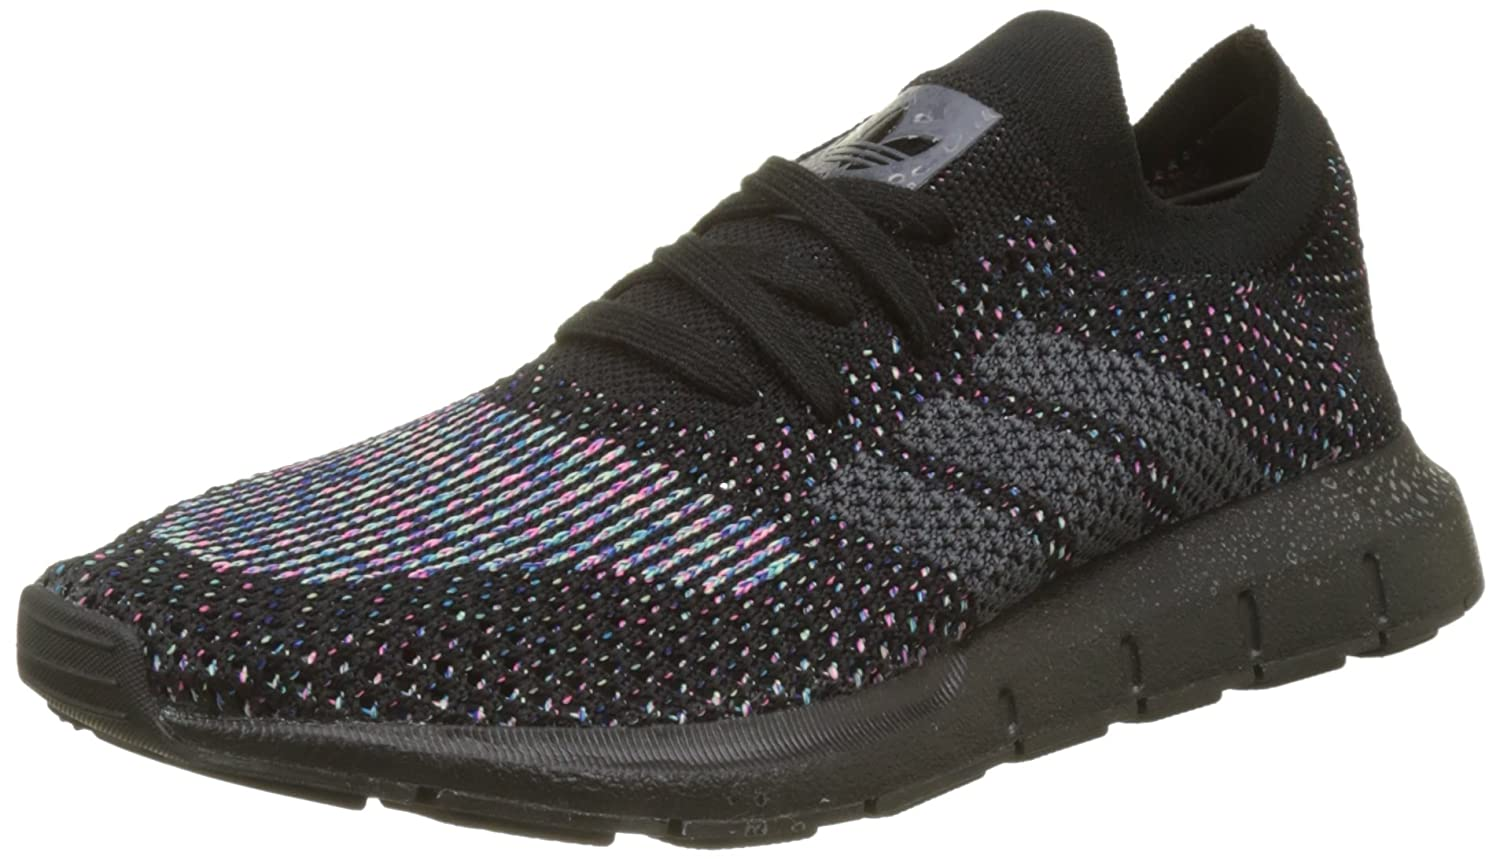 753146c069f58 adidas Unisex Adults  Swift Run Primeknit Trainers  Amazon.co.uk  Shoes    Bags